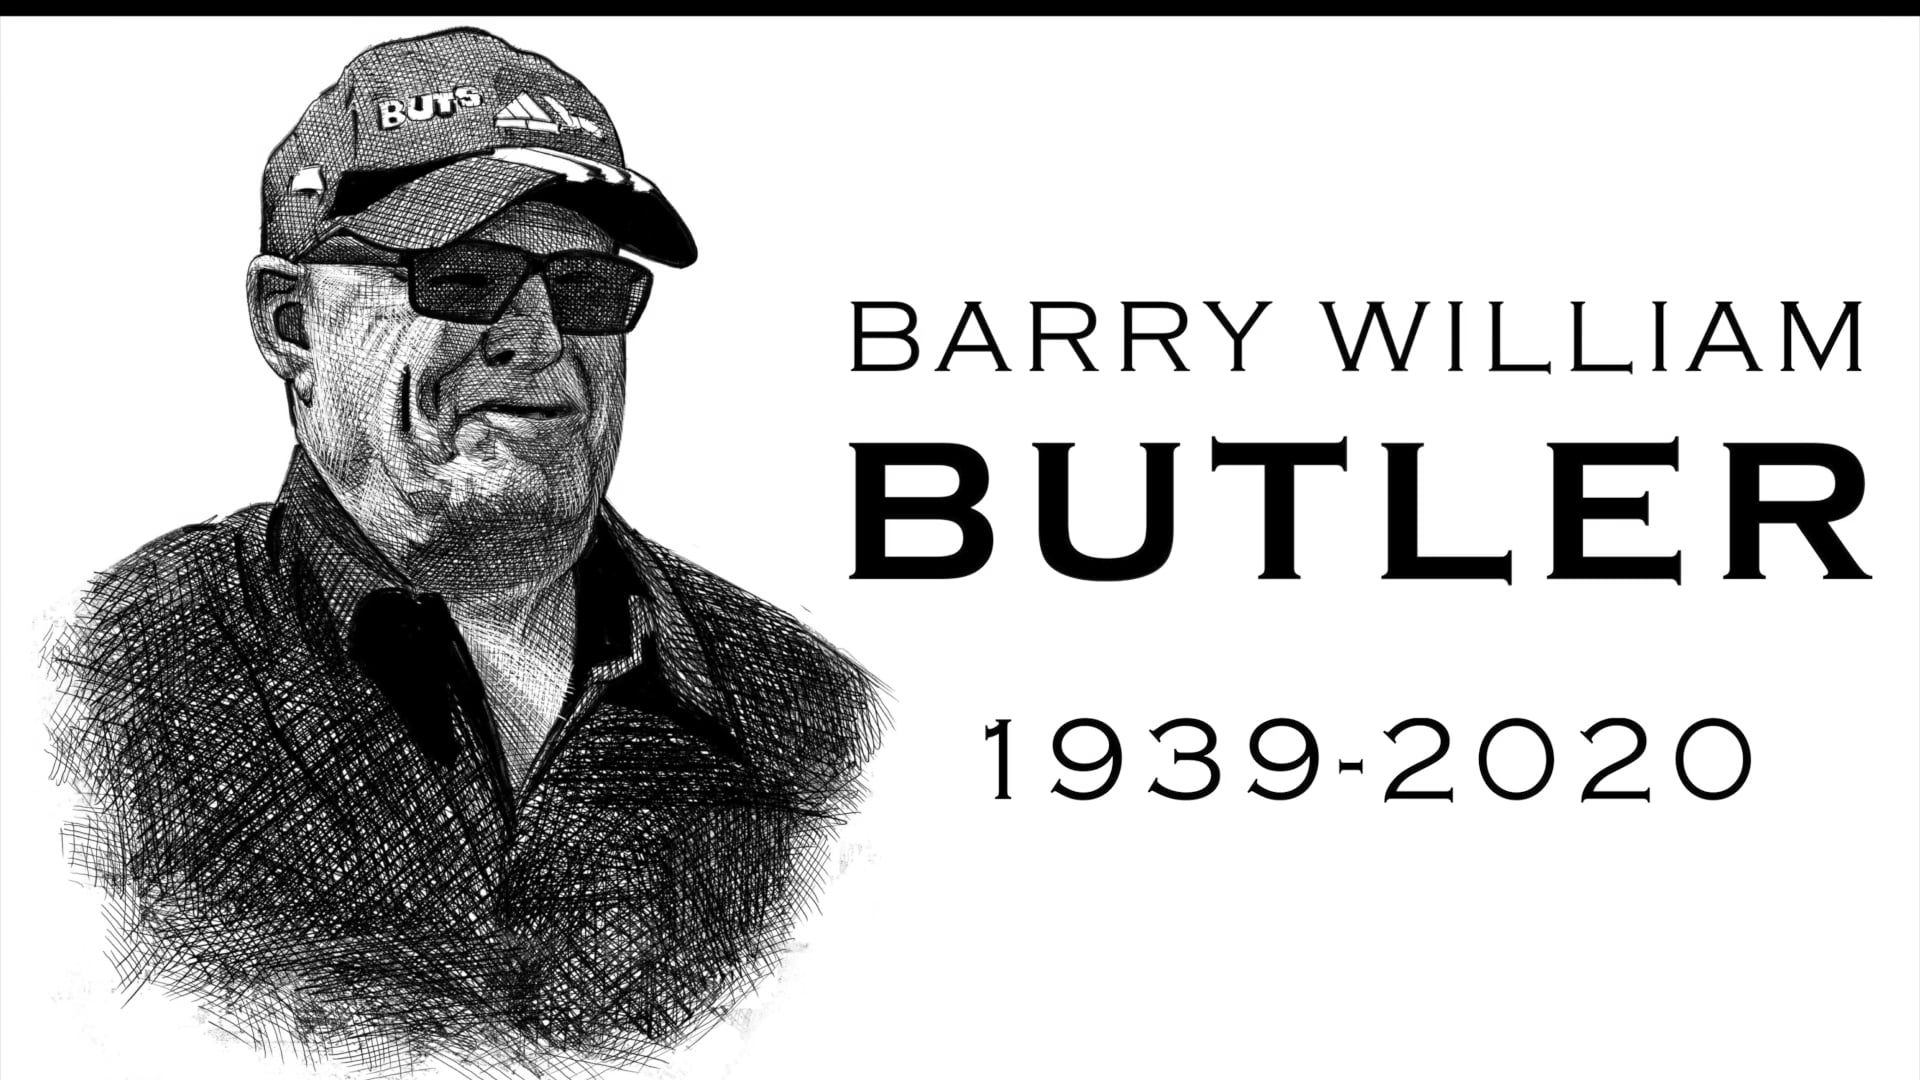 Barry-Butler-2020-Memorial